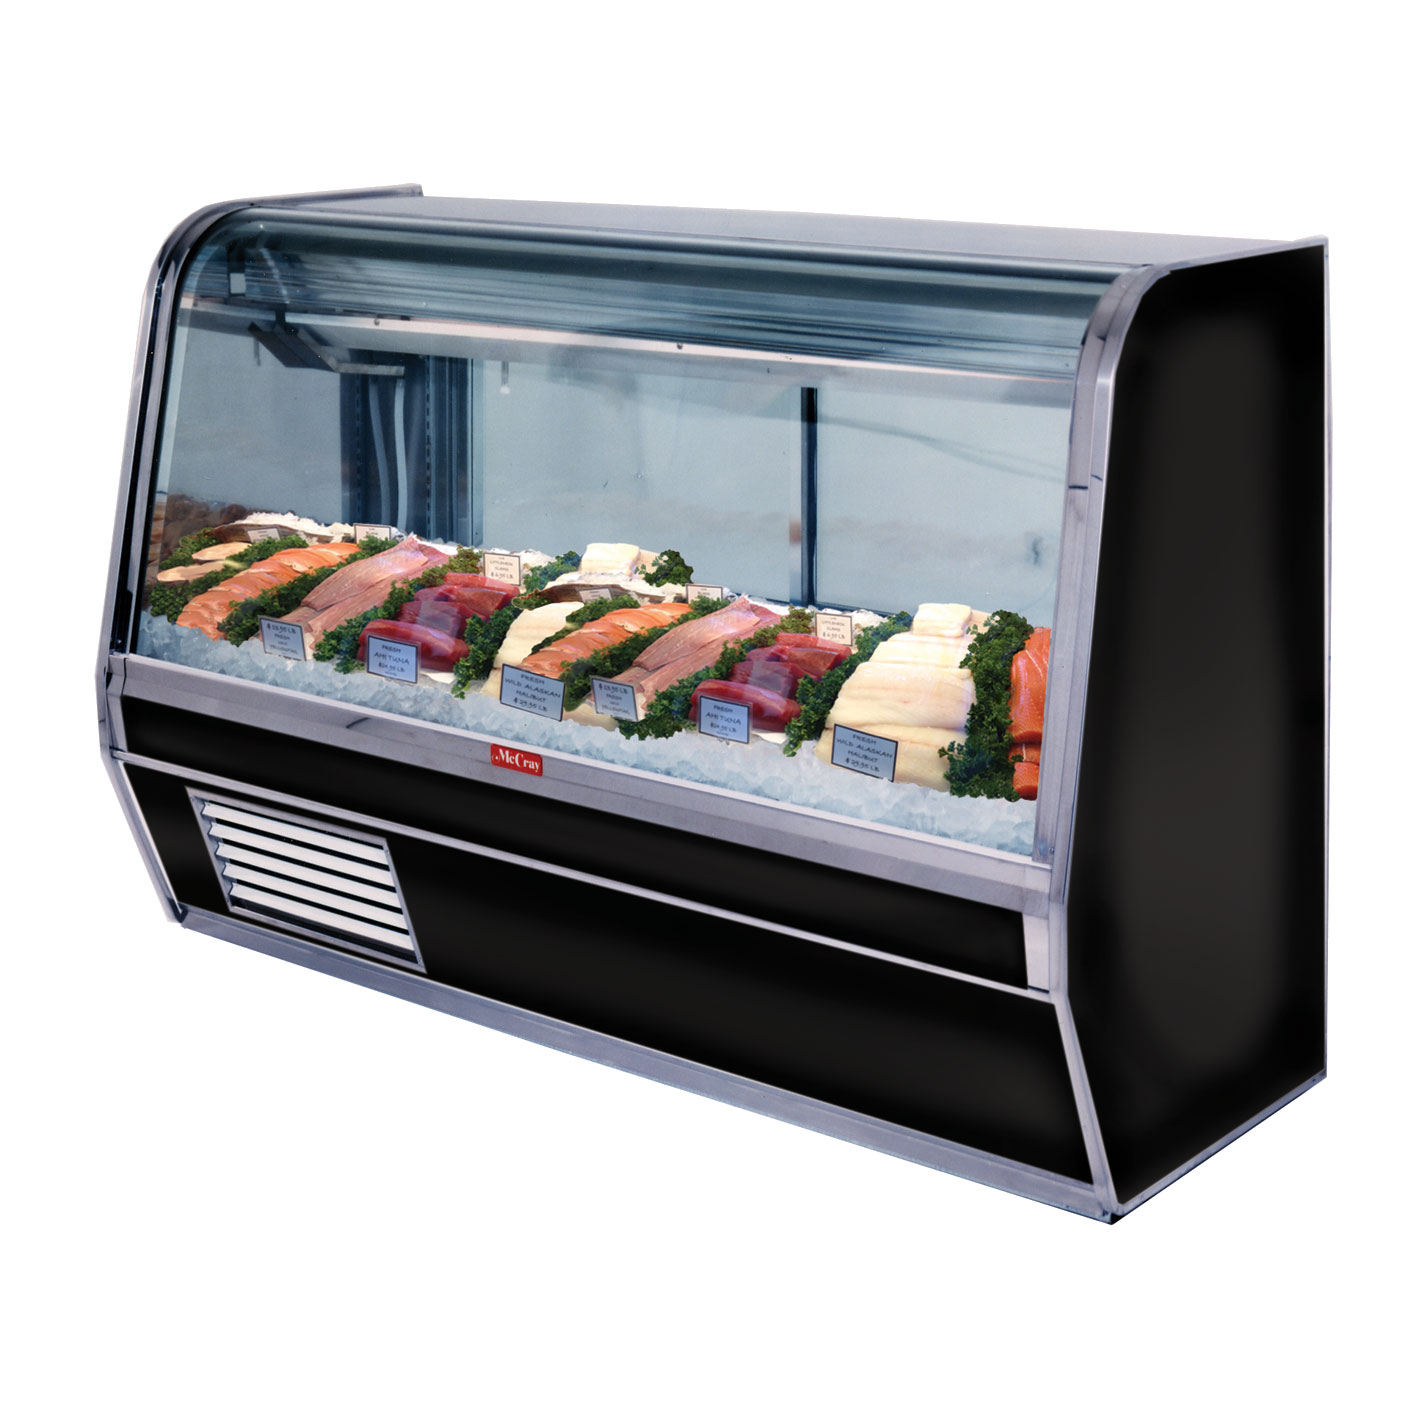 Howard-McCray R-CFS32E-8C-S-LED display case, deli seafood / poultry